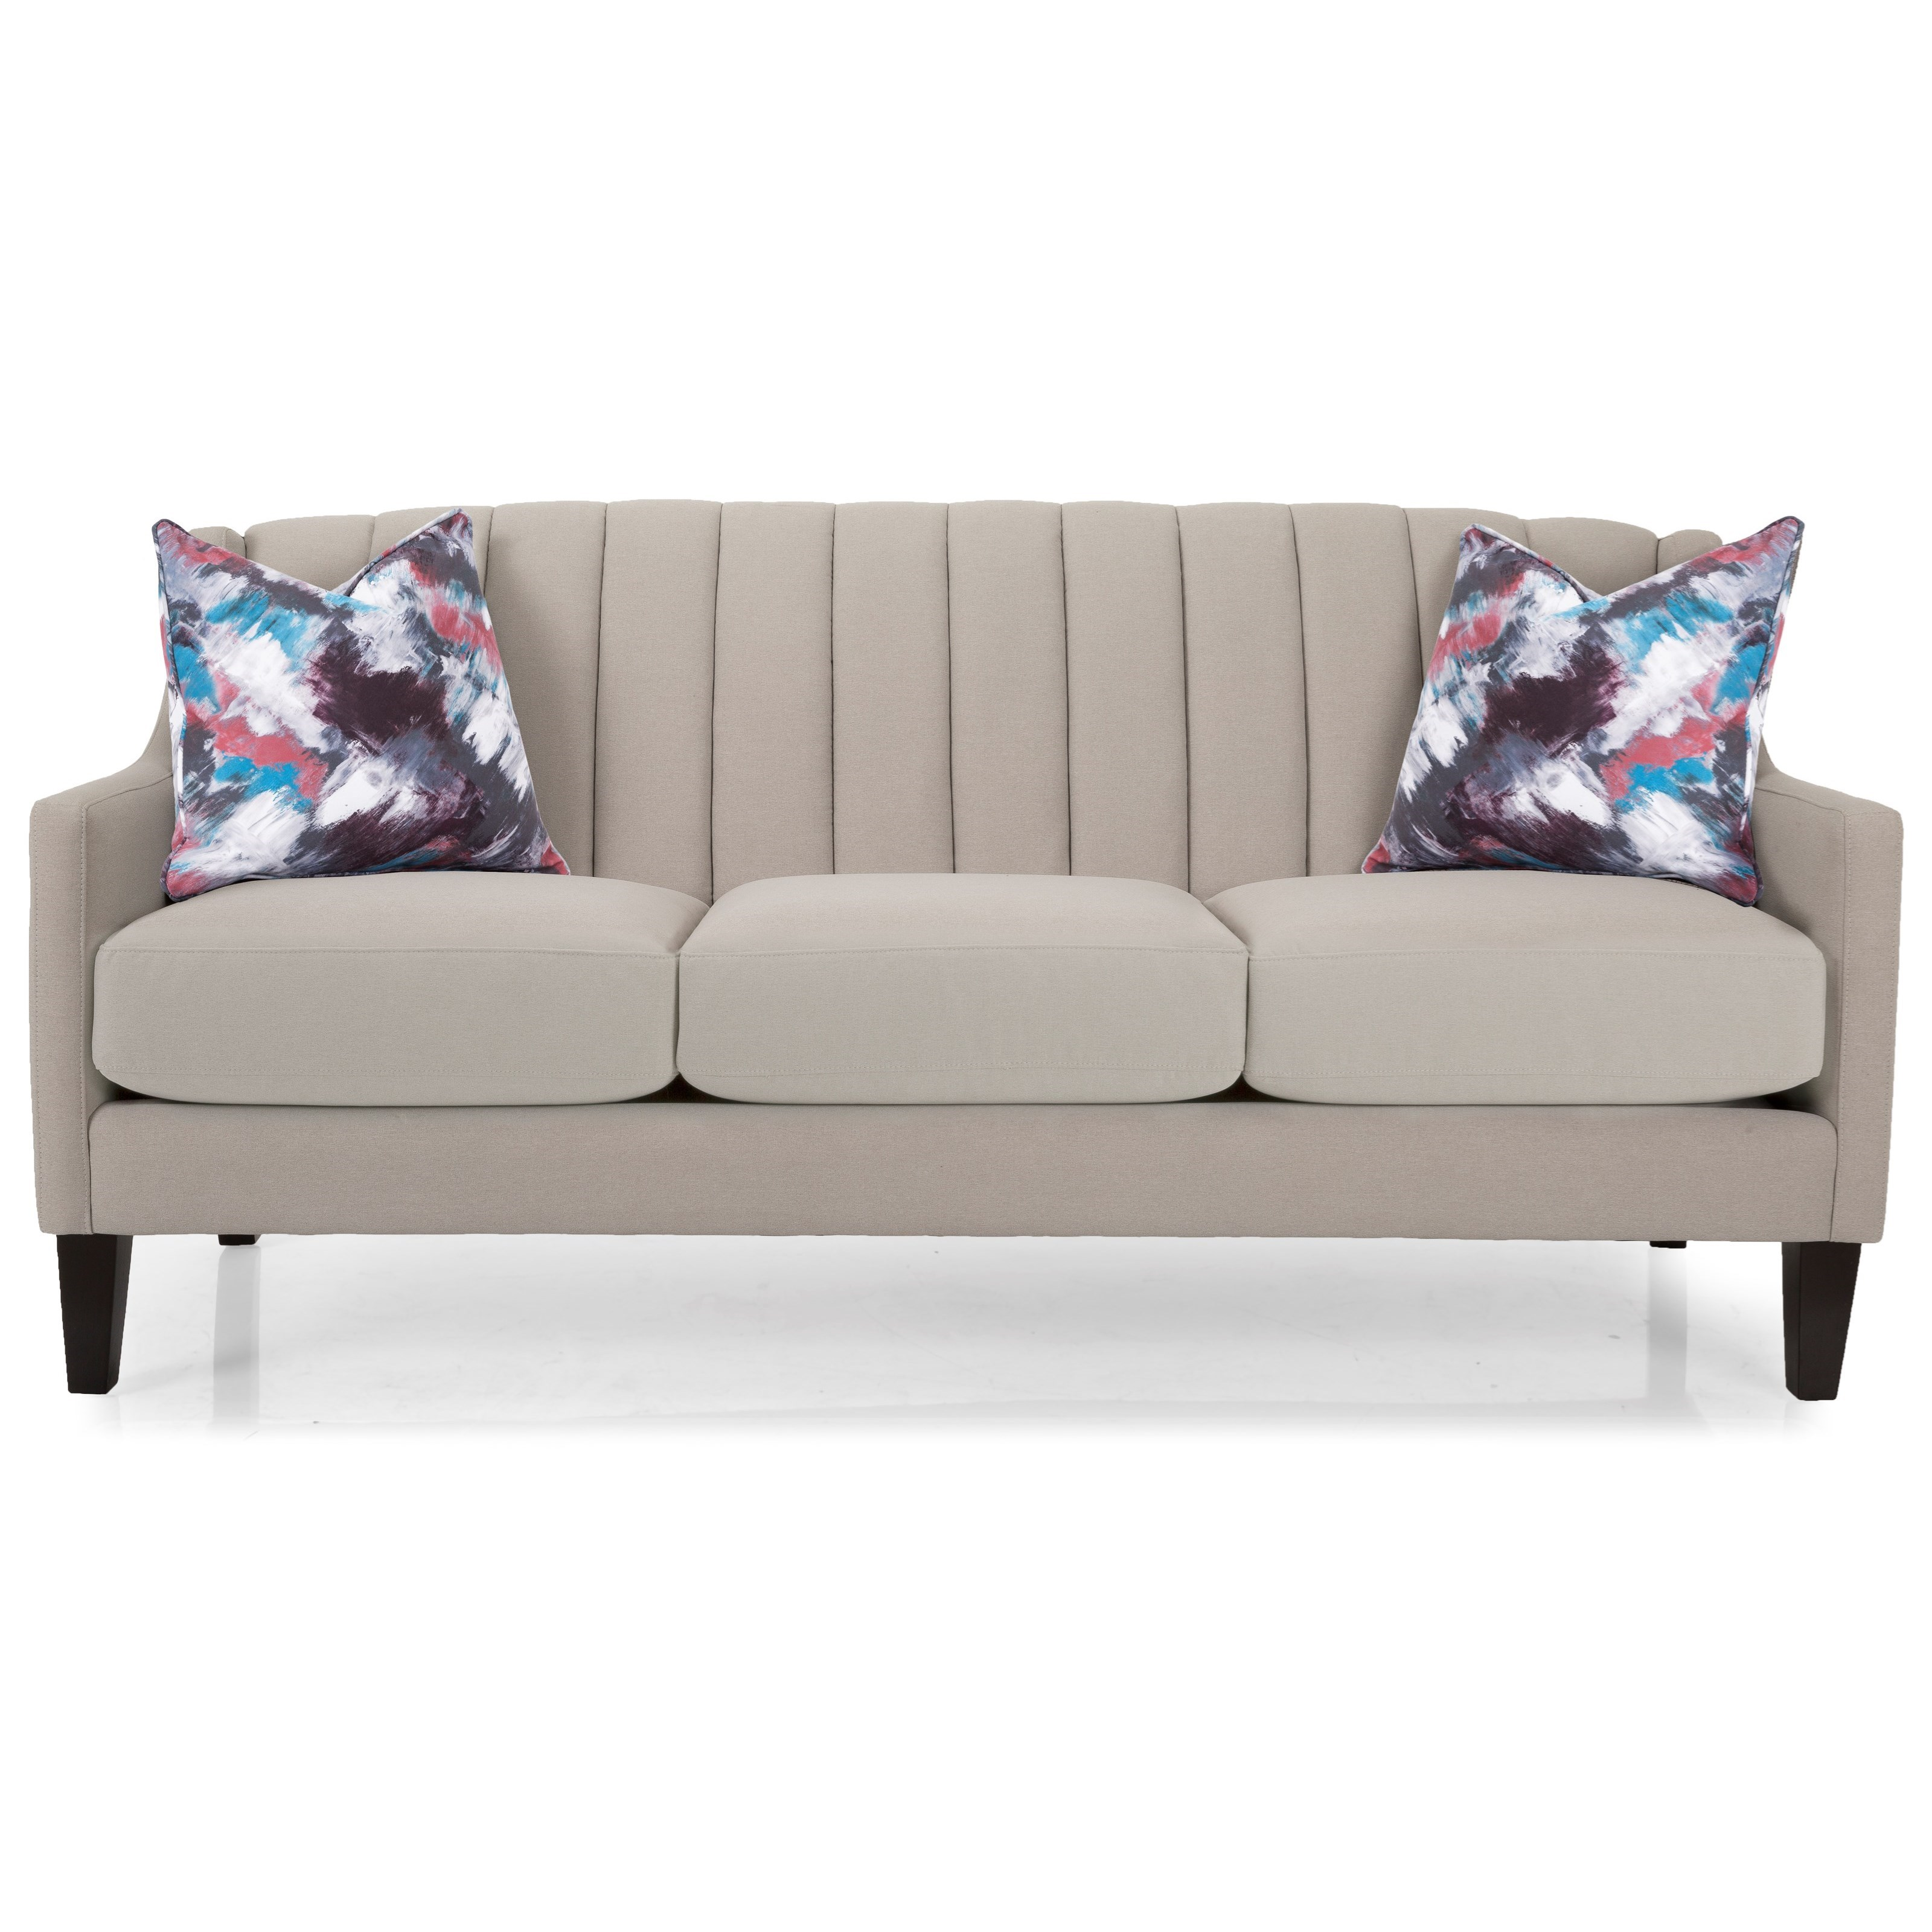 2830 Sofa by Decor-Rest at Upper Room Home Furnishings